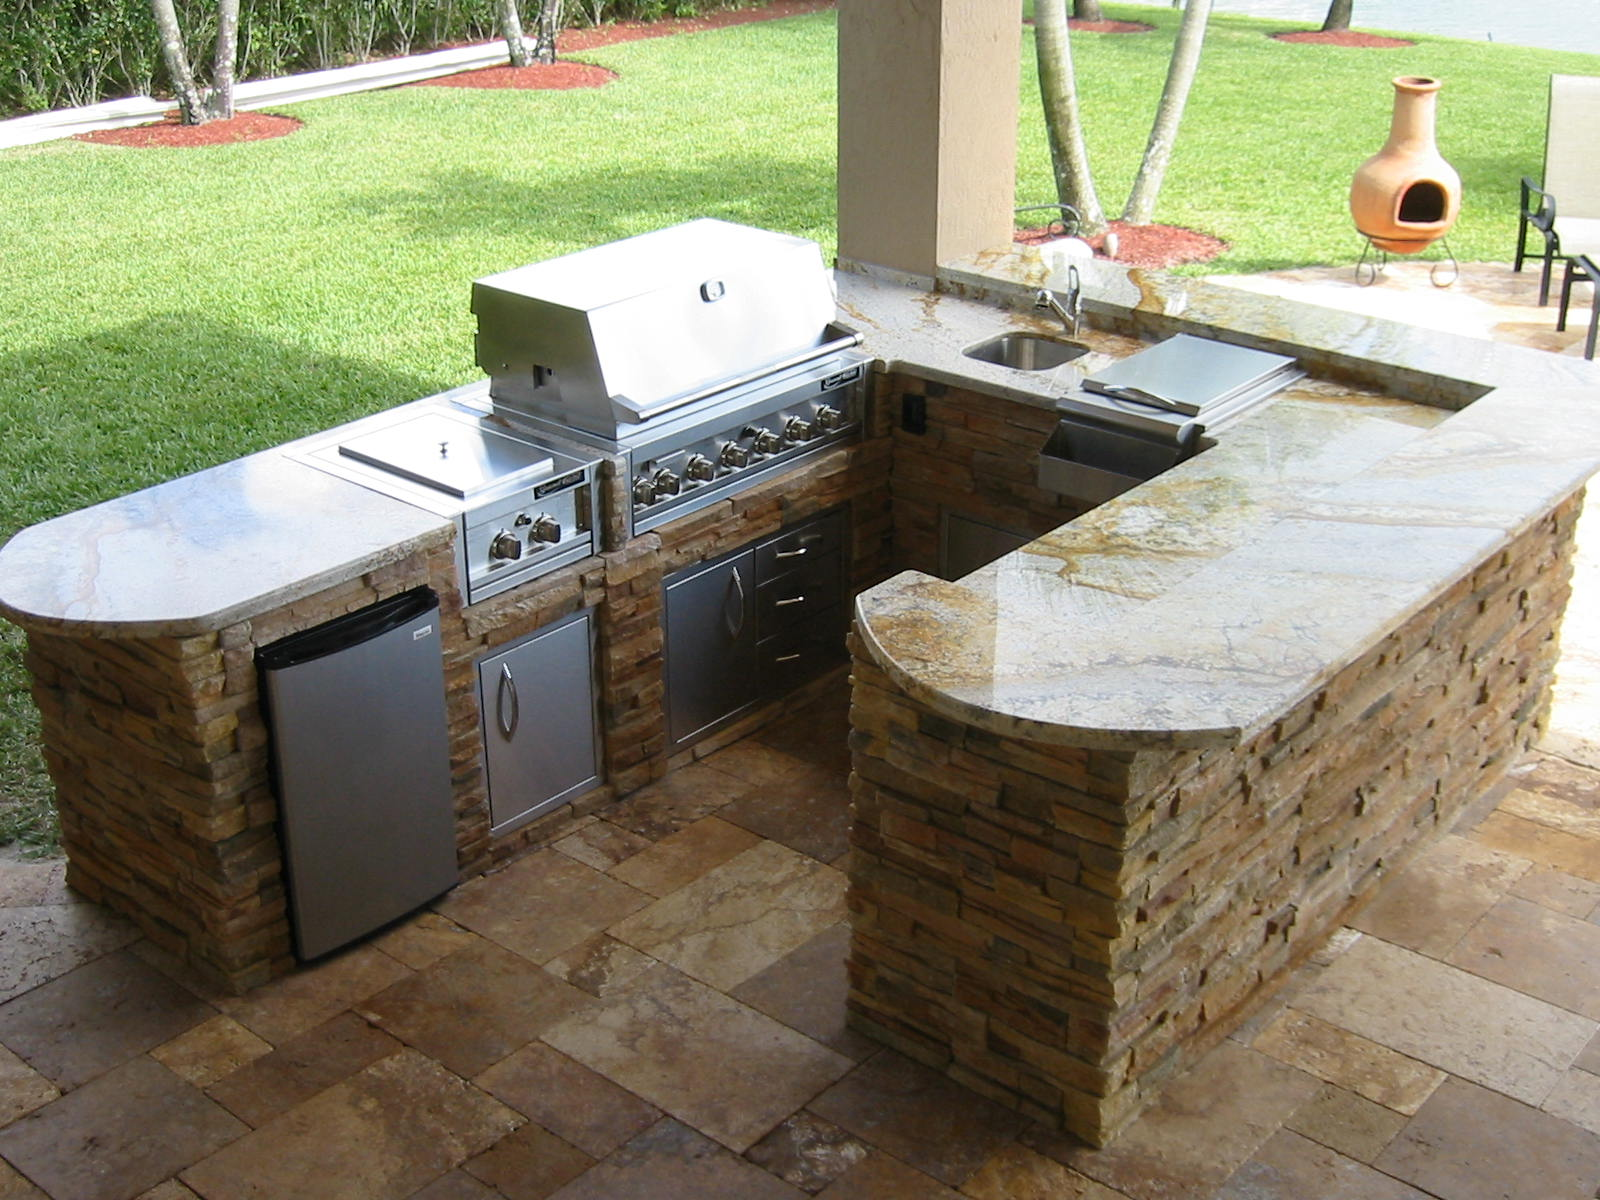 Outdoor kitchen depot outdoor kitchen building and design for Outdoor kitchen pictures design ideas